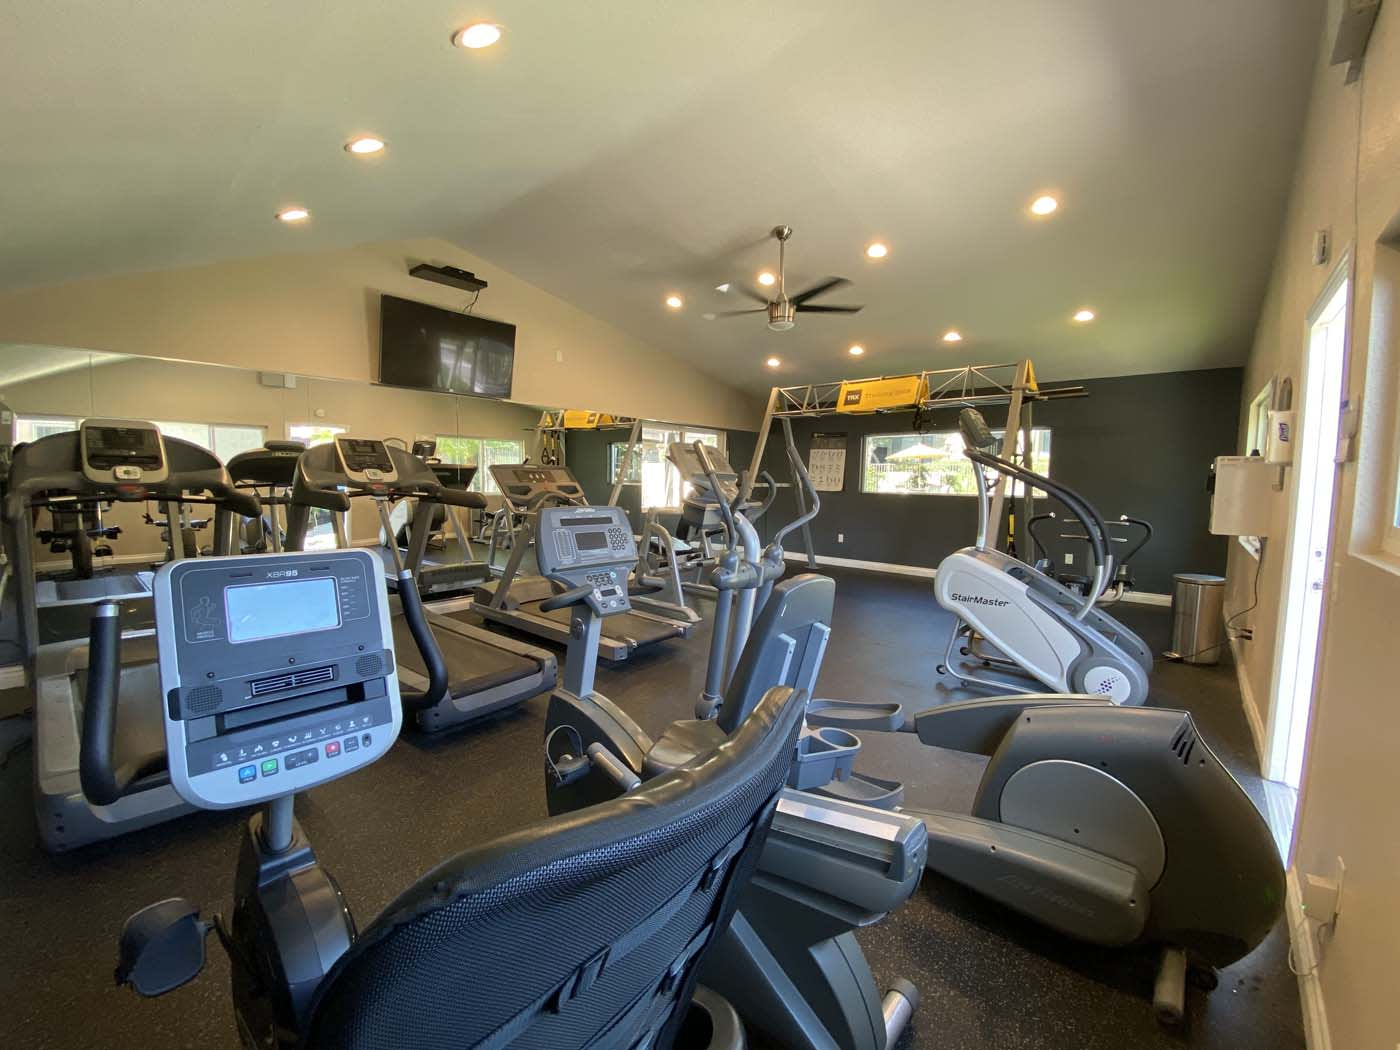 Fitness Center at Stoneridge Apartment, Upland